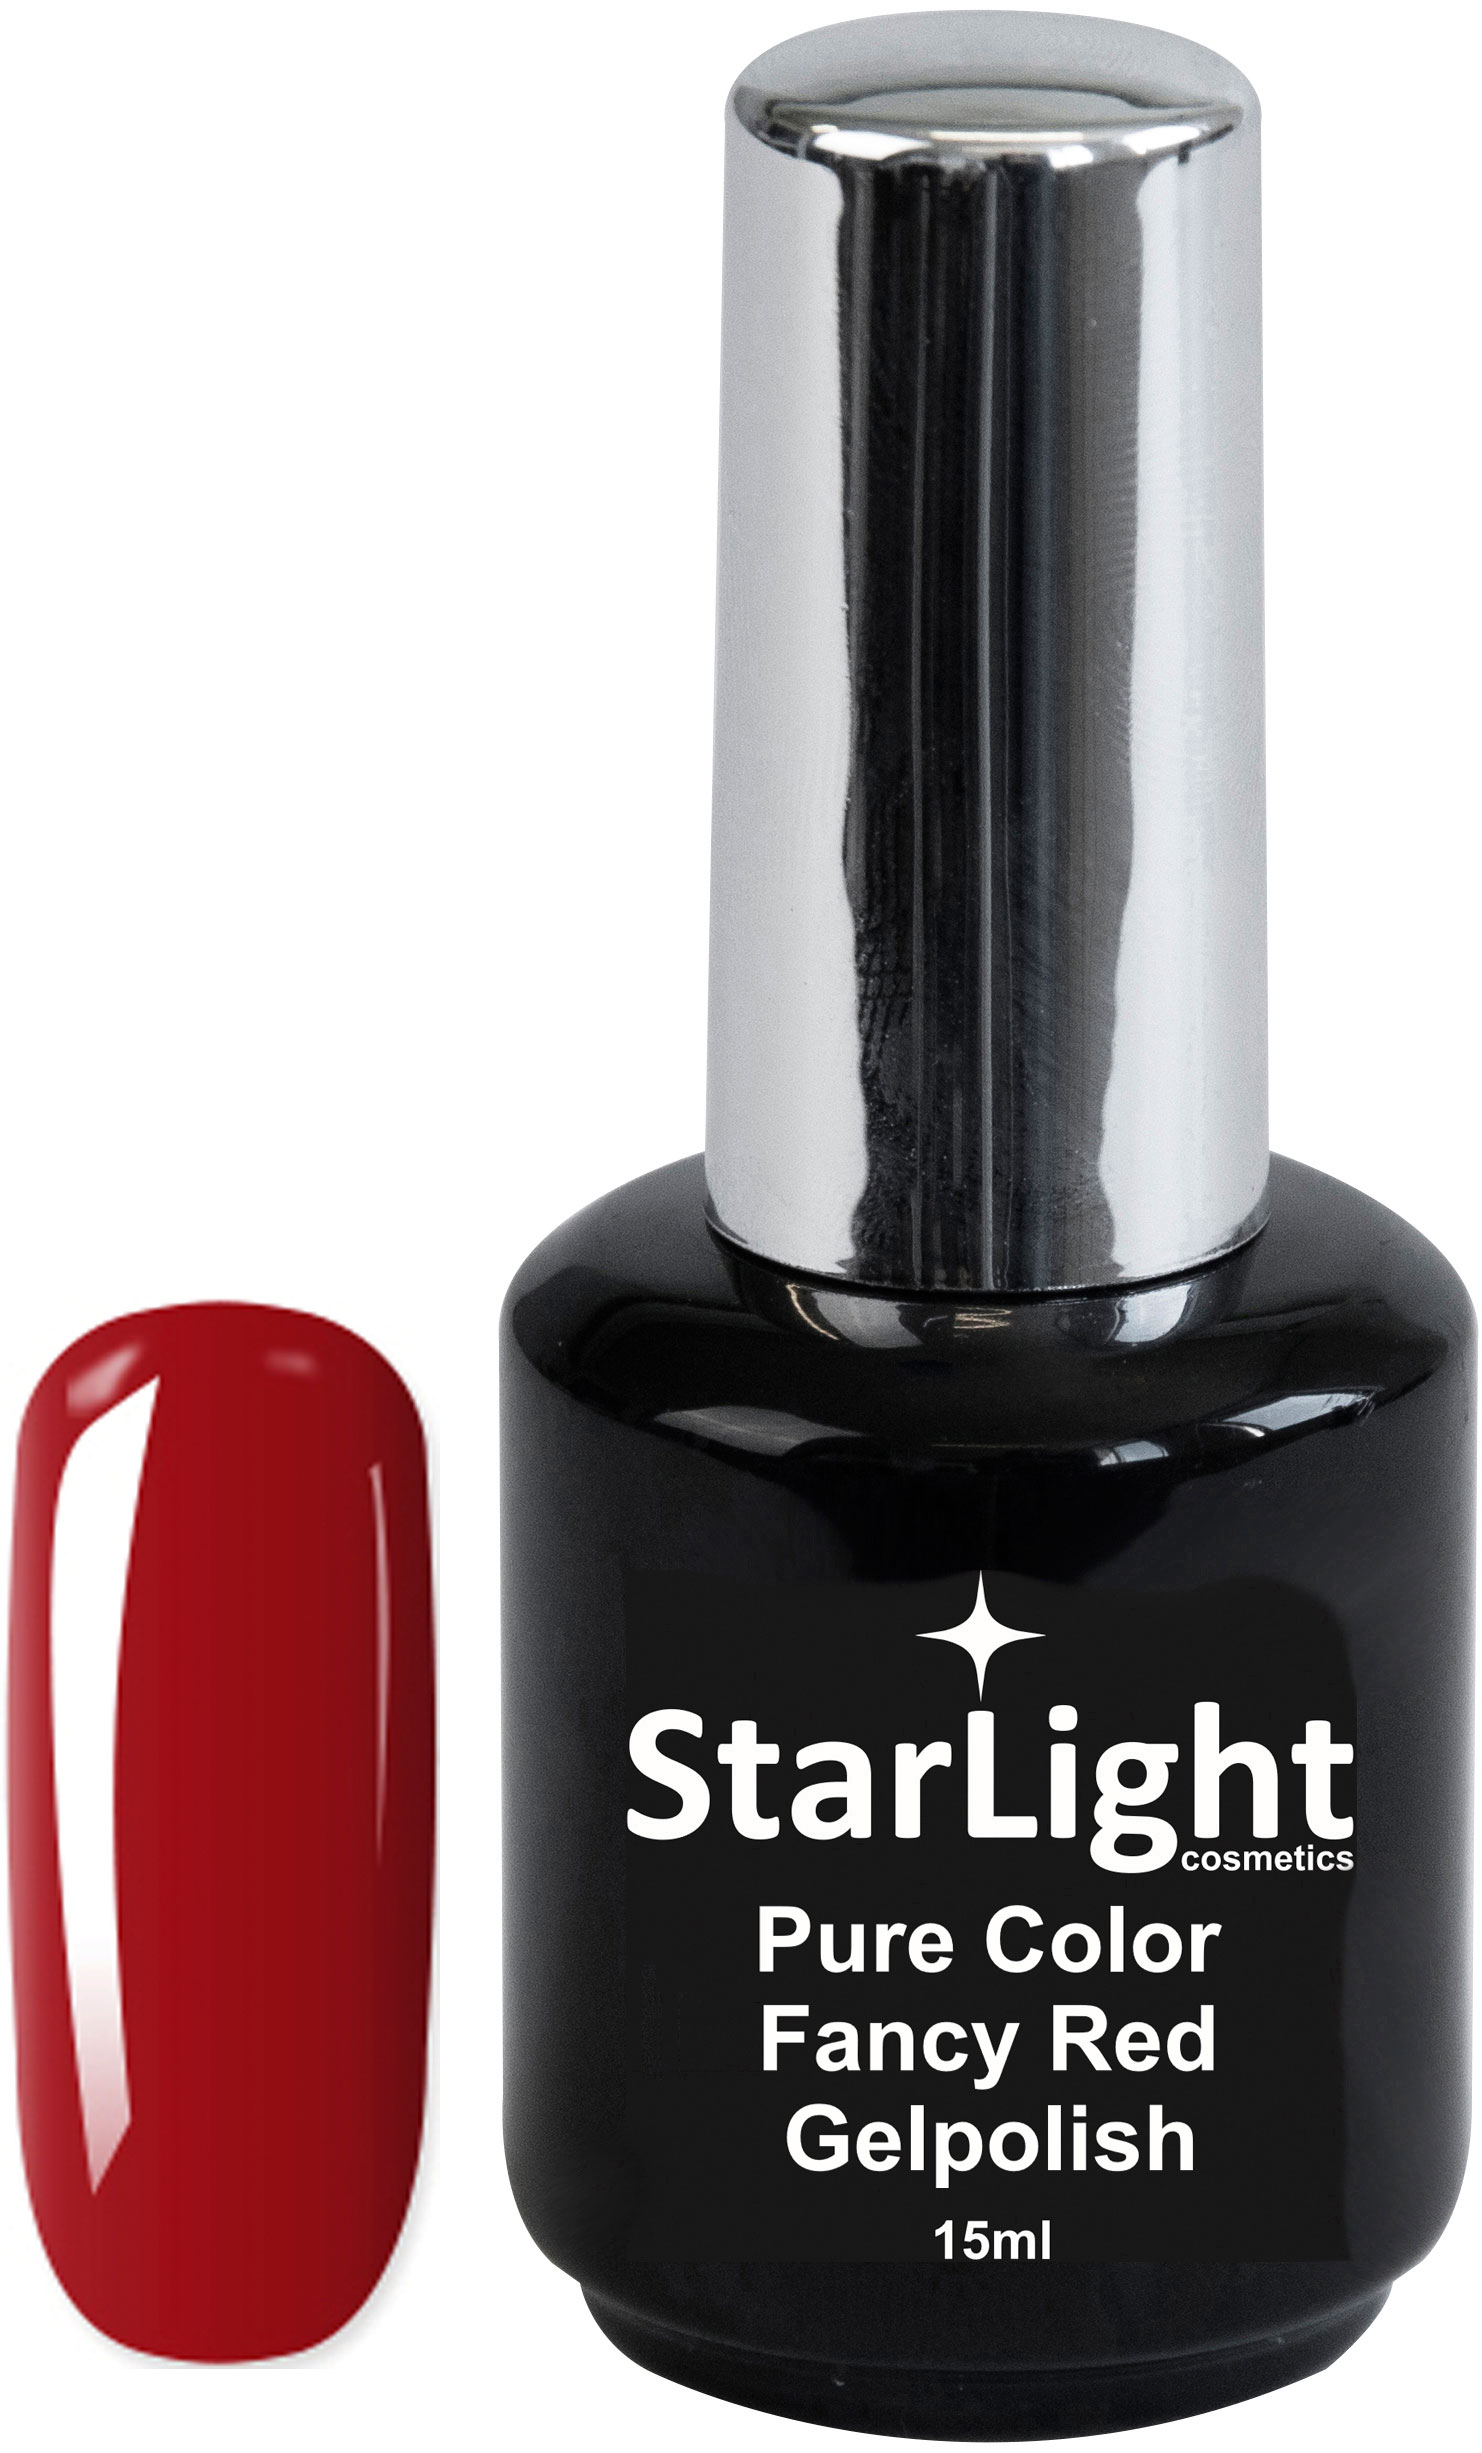 Naglar Gelpolish Pure Color Fancy Red - 15 ml